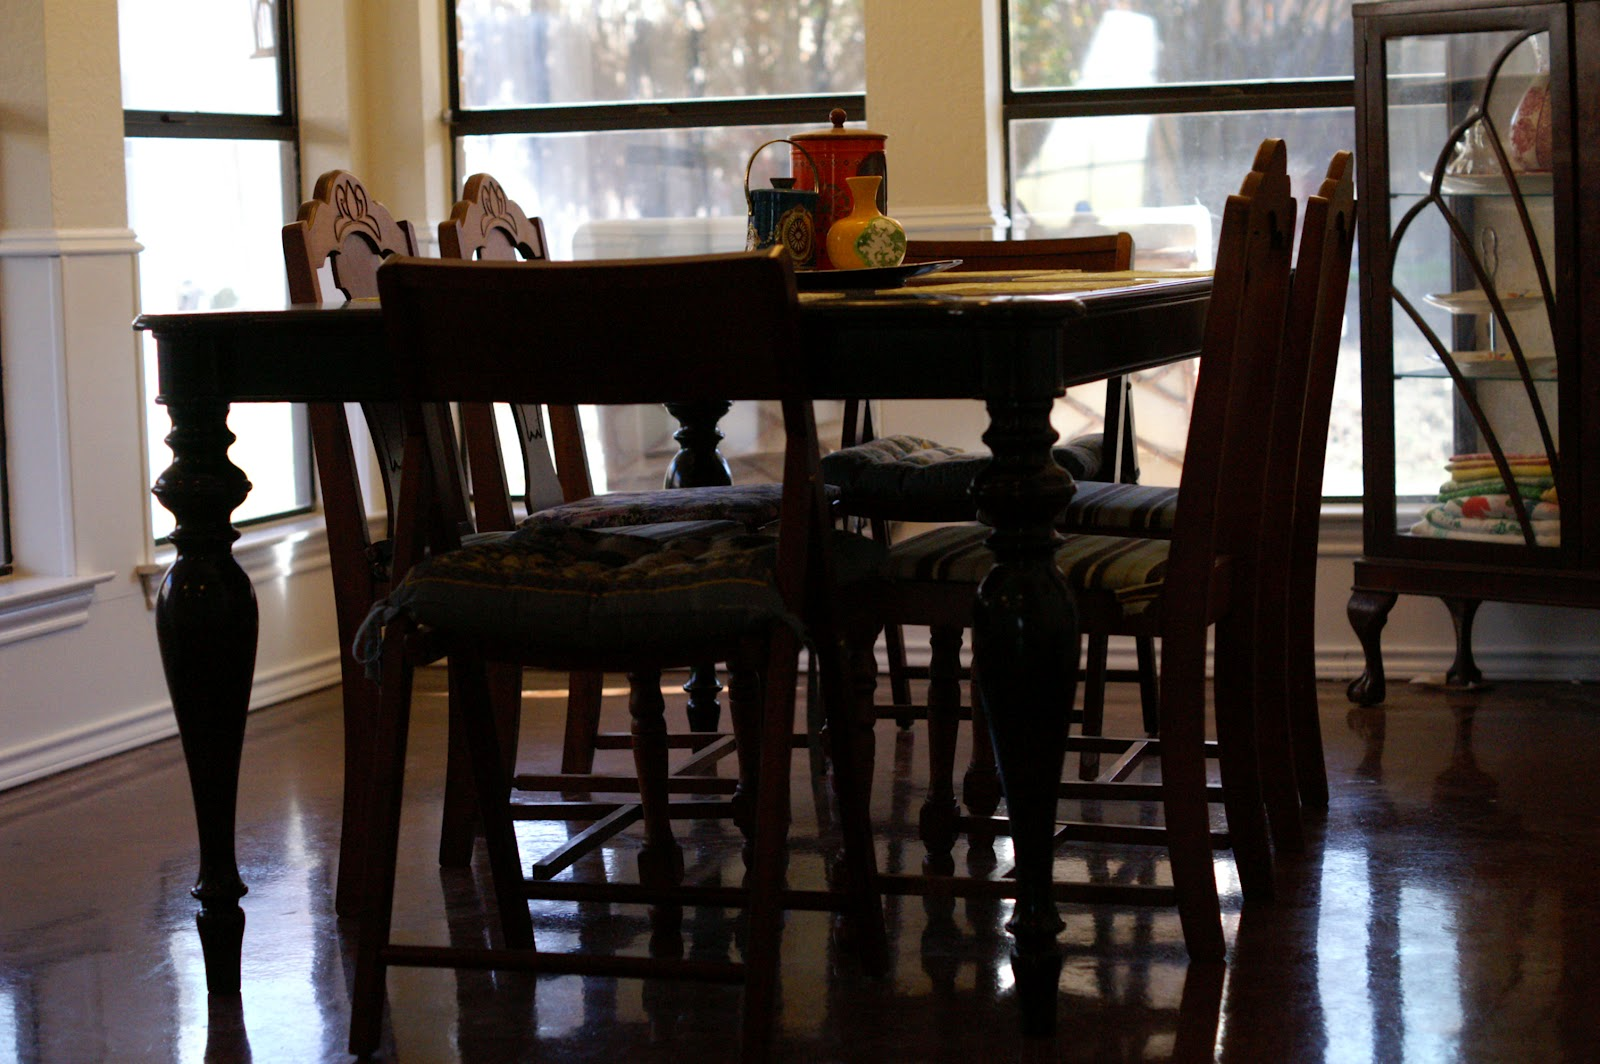 Pier Dining Room Table Chairs Collective Dwnm, Dining Tables